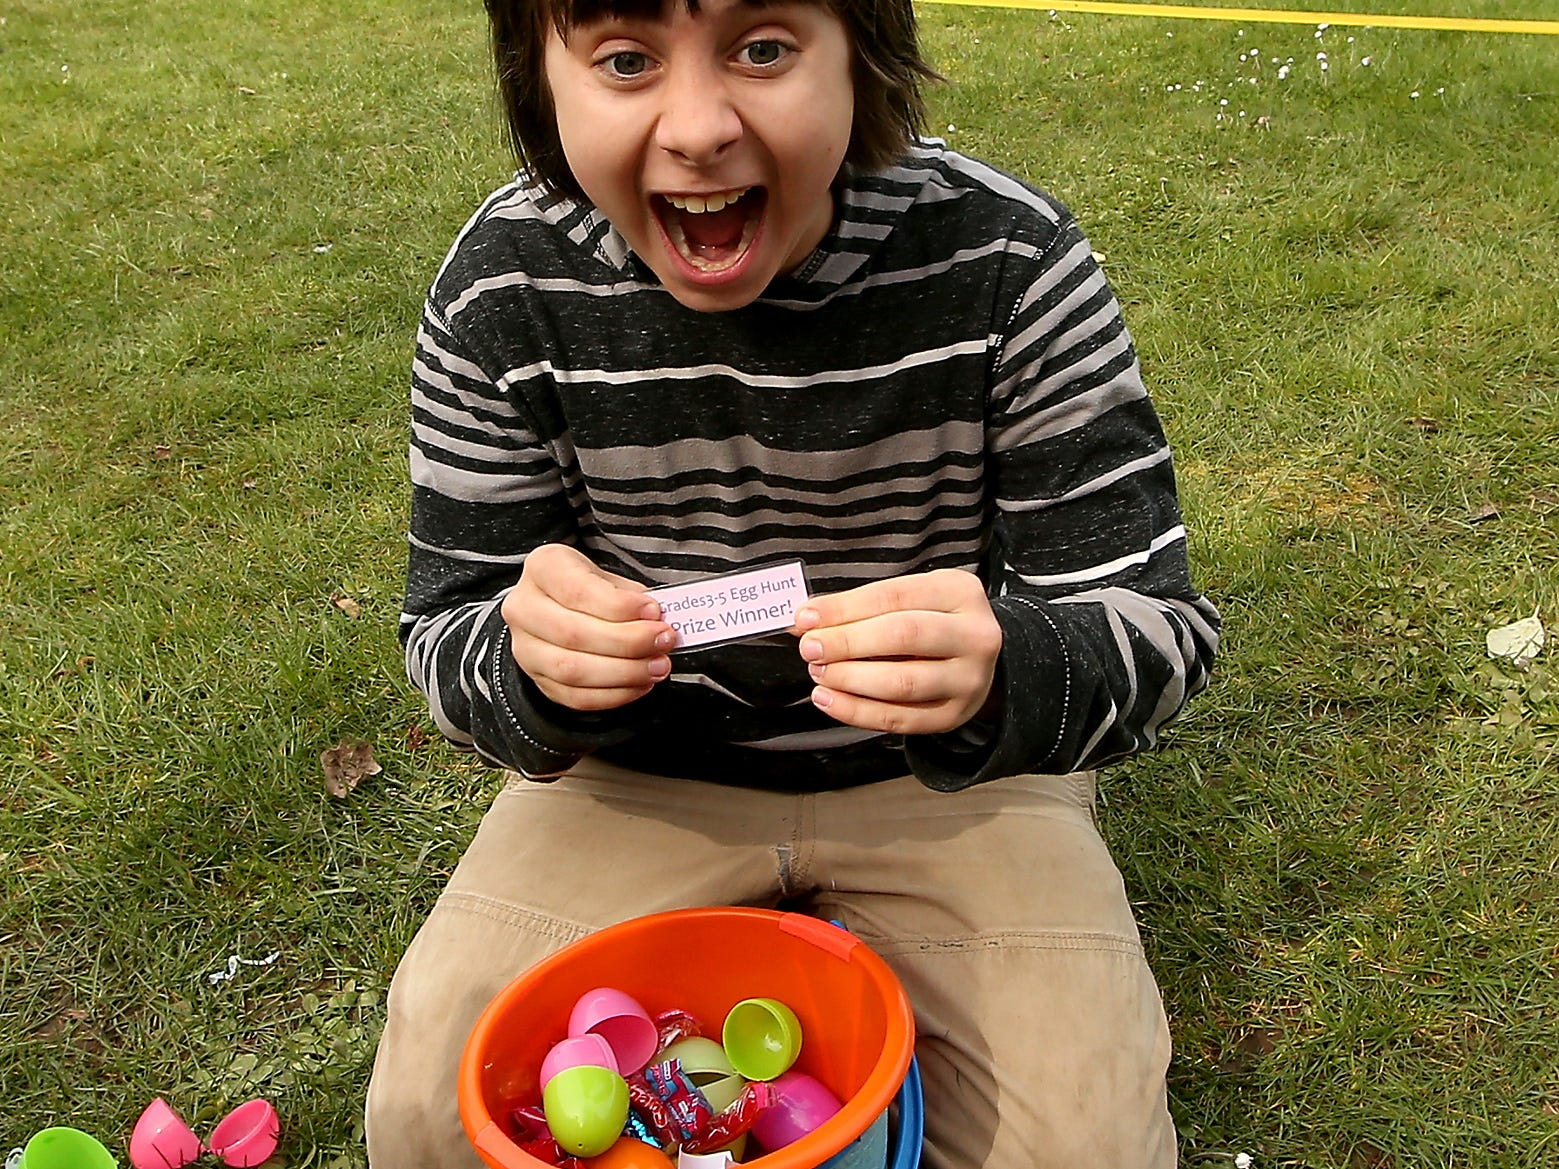 An excited Adam Champion, 10, of Bainbridge Island, reacts to the grand prize ticket that he found inside one of the plastic eggs he collected during the mEGGa Hunt at Bainbridge Island, Washington's Battle Point Park on Saturday, March 31, 2018.